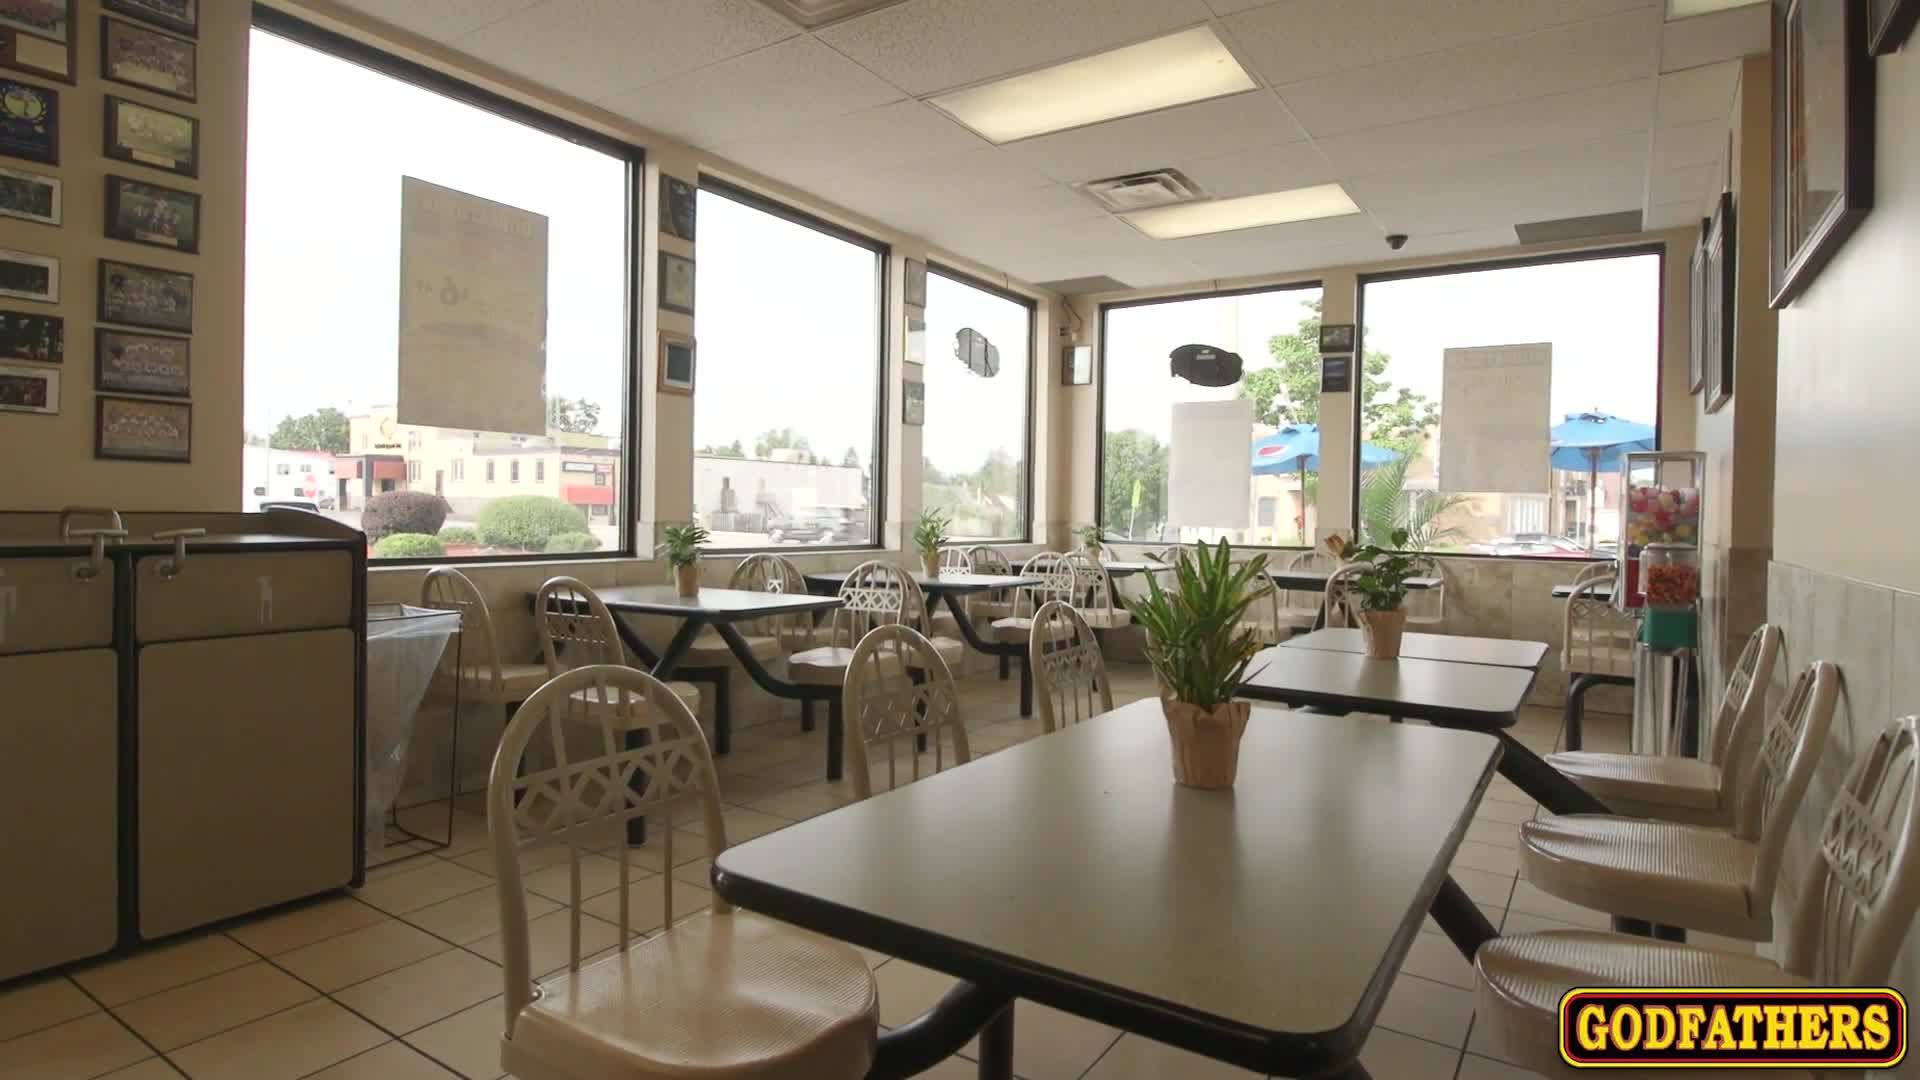 Godfathers Pizza - Exeter - Pizza & Pizzerias - 5192354235